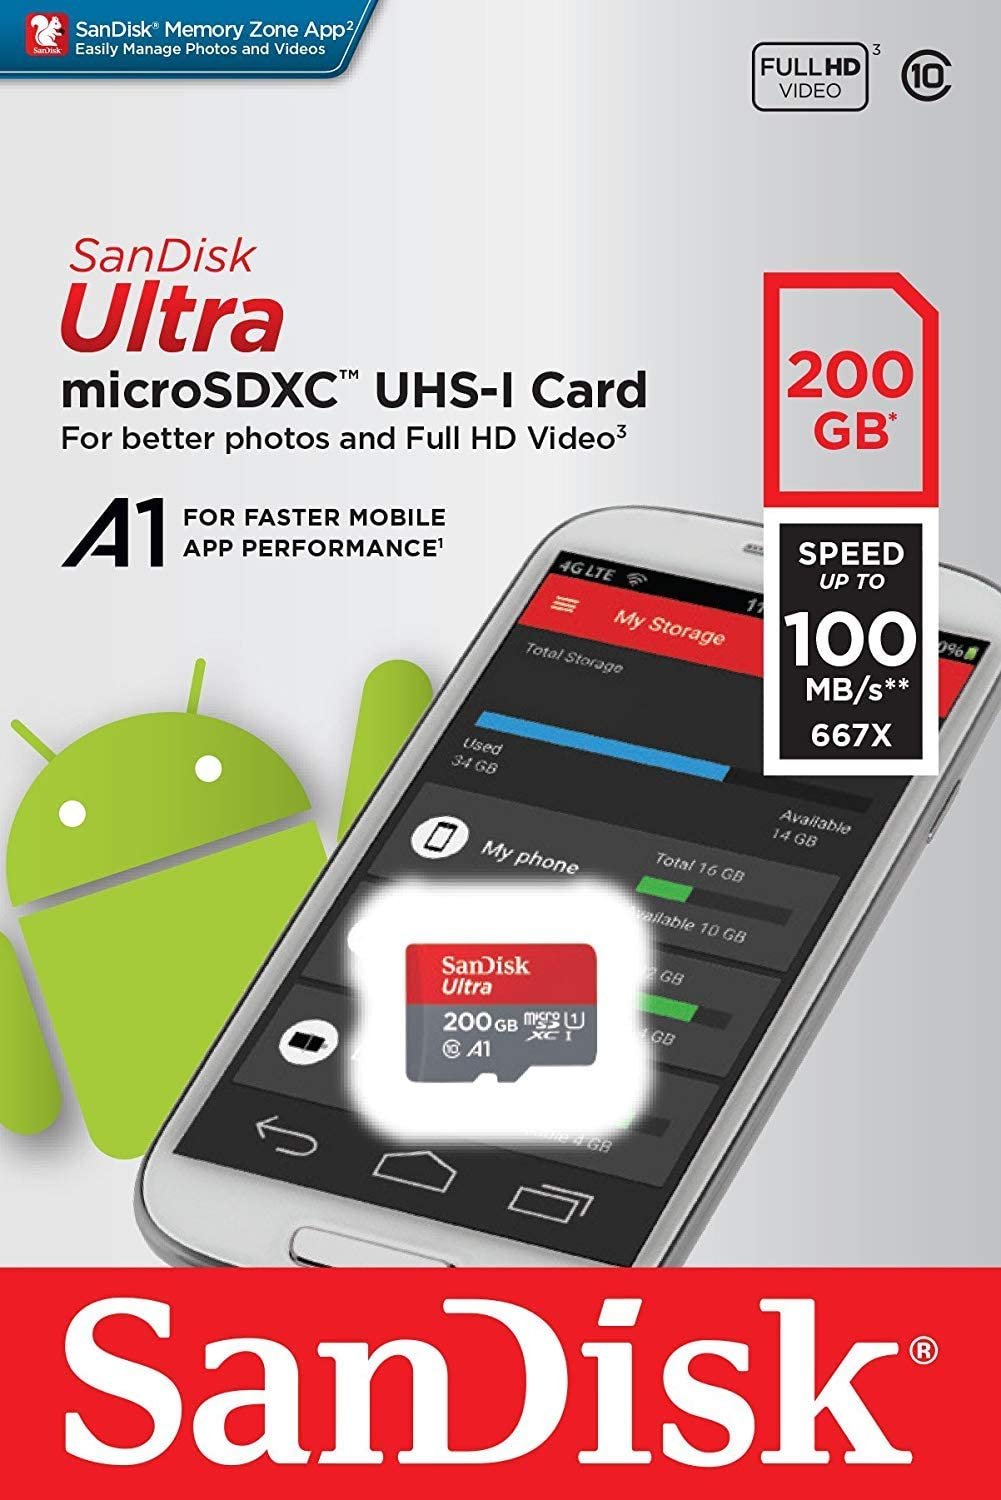 100MBs A1 U1 C10 Works with SanDisk 2016 by SanFlash SanDisk Ultra 200GB MicroSDXC Verified for Samsung Galaxy A5